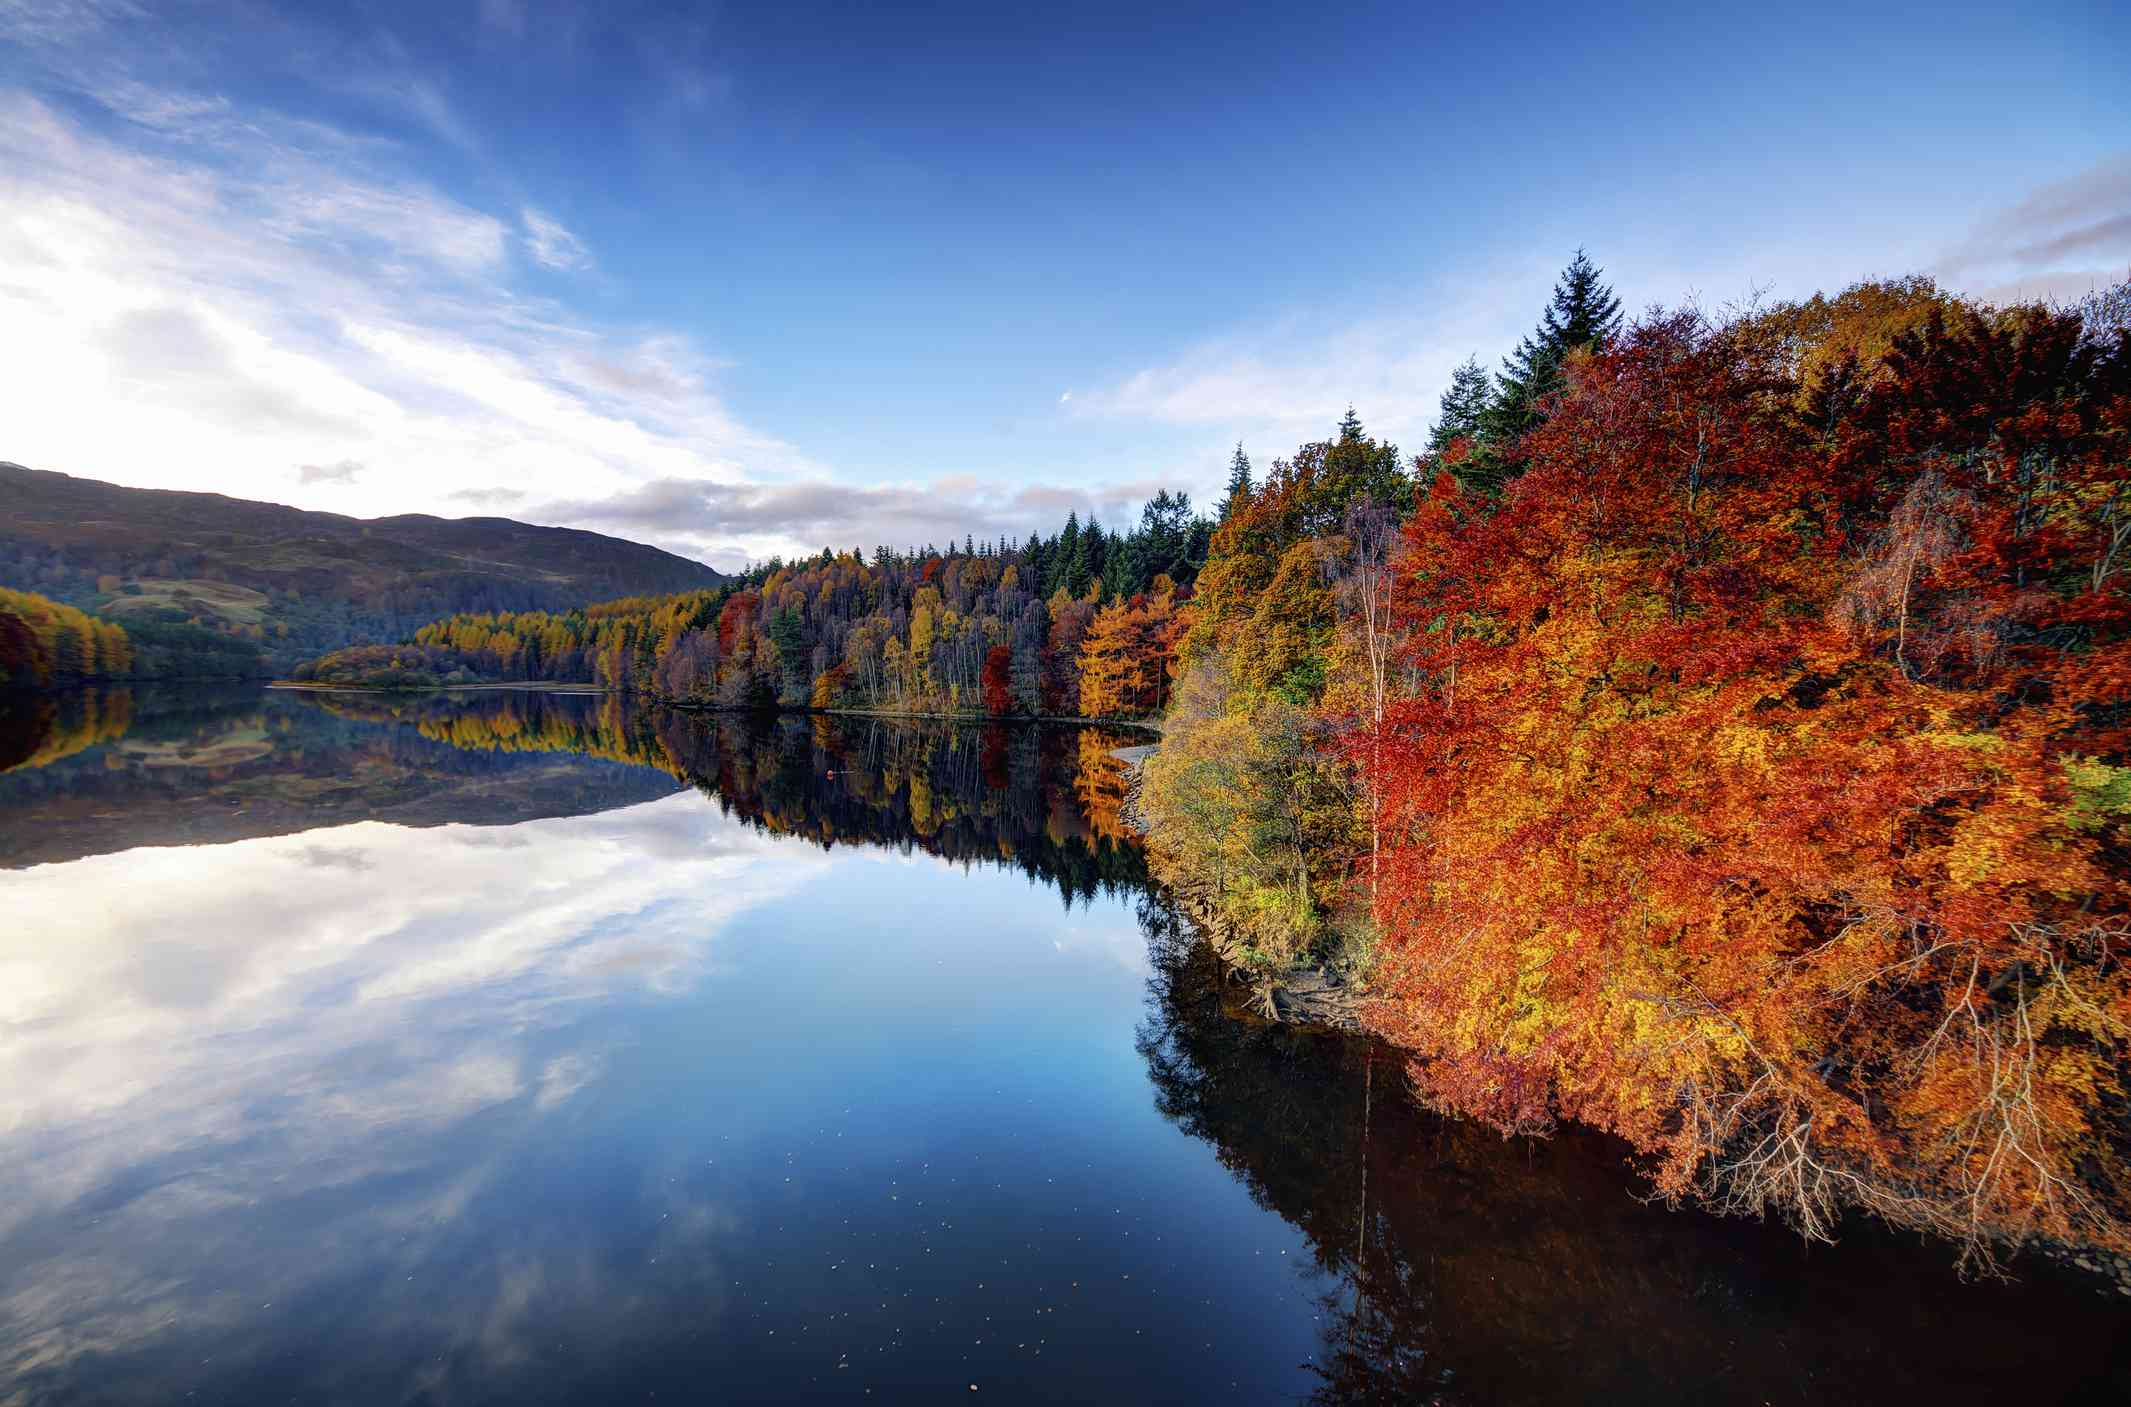 View of Loch Faskally lined with autumn trees in shades of red, gold, and green with a blue sky and white clouds above reflected in the lake